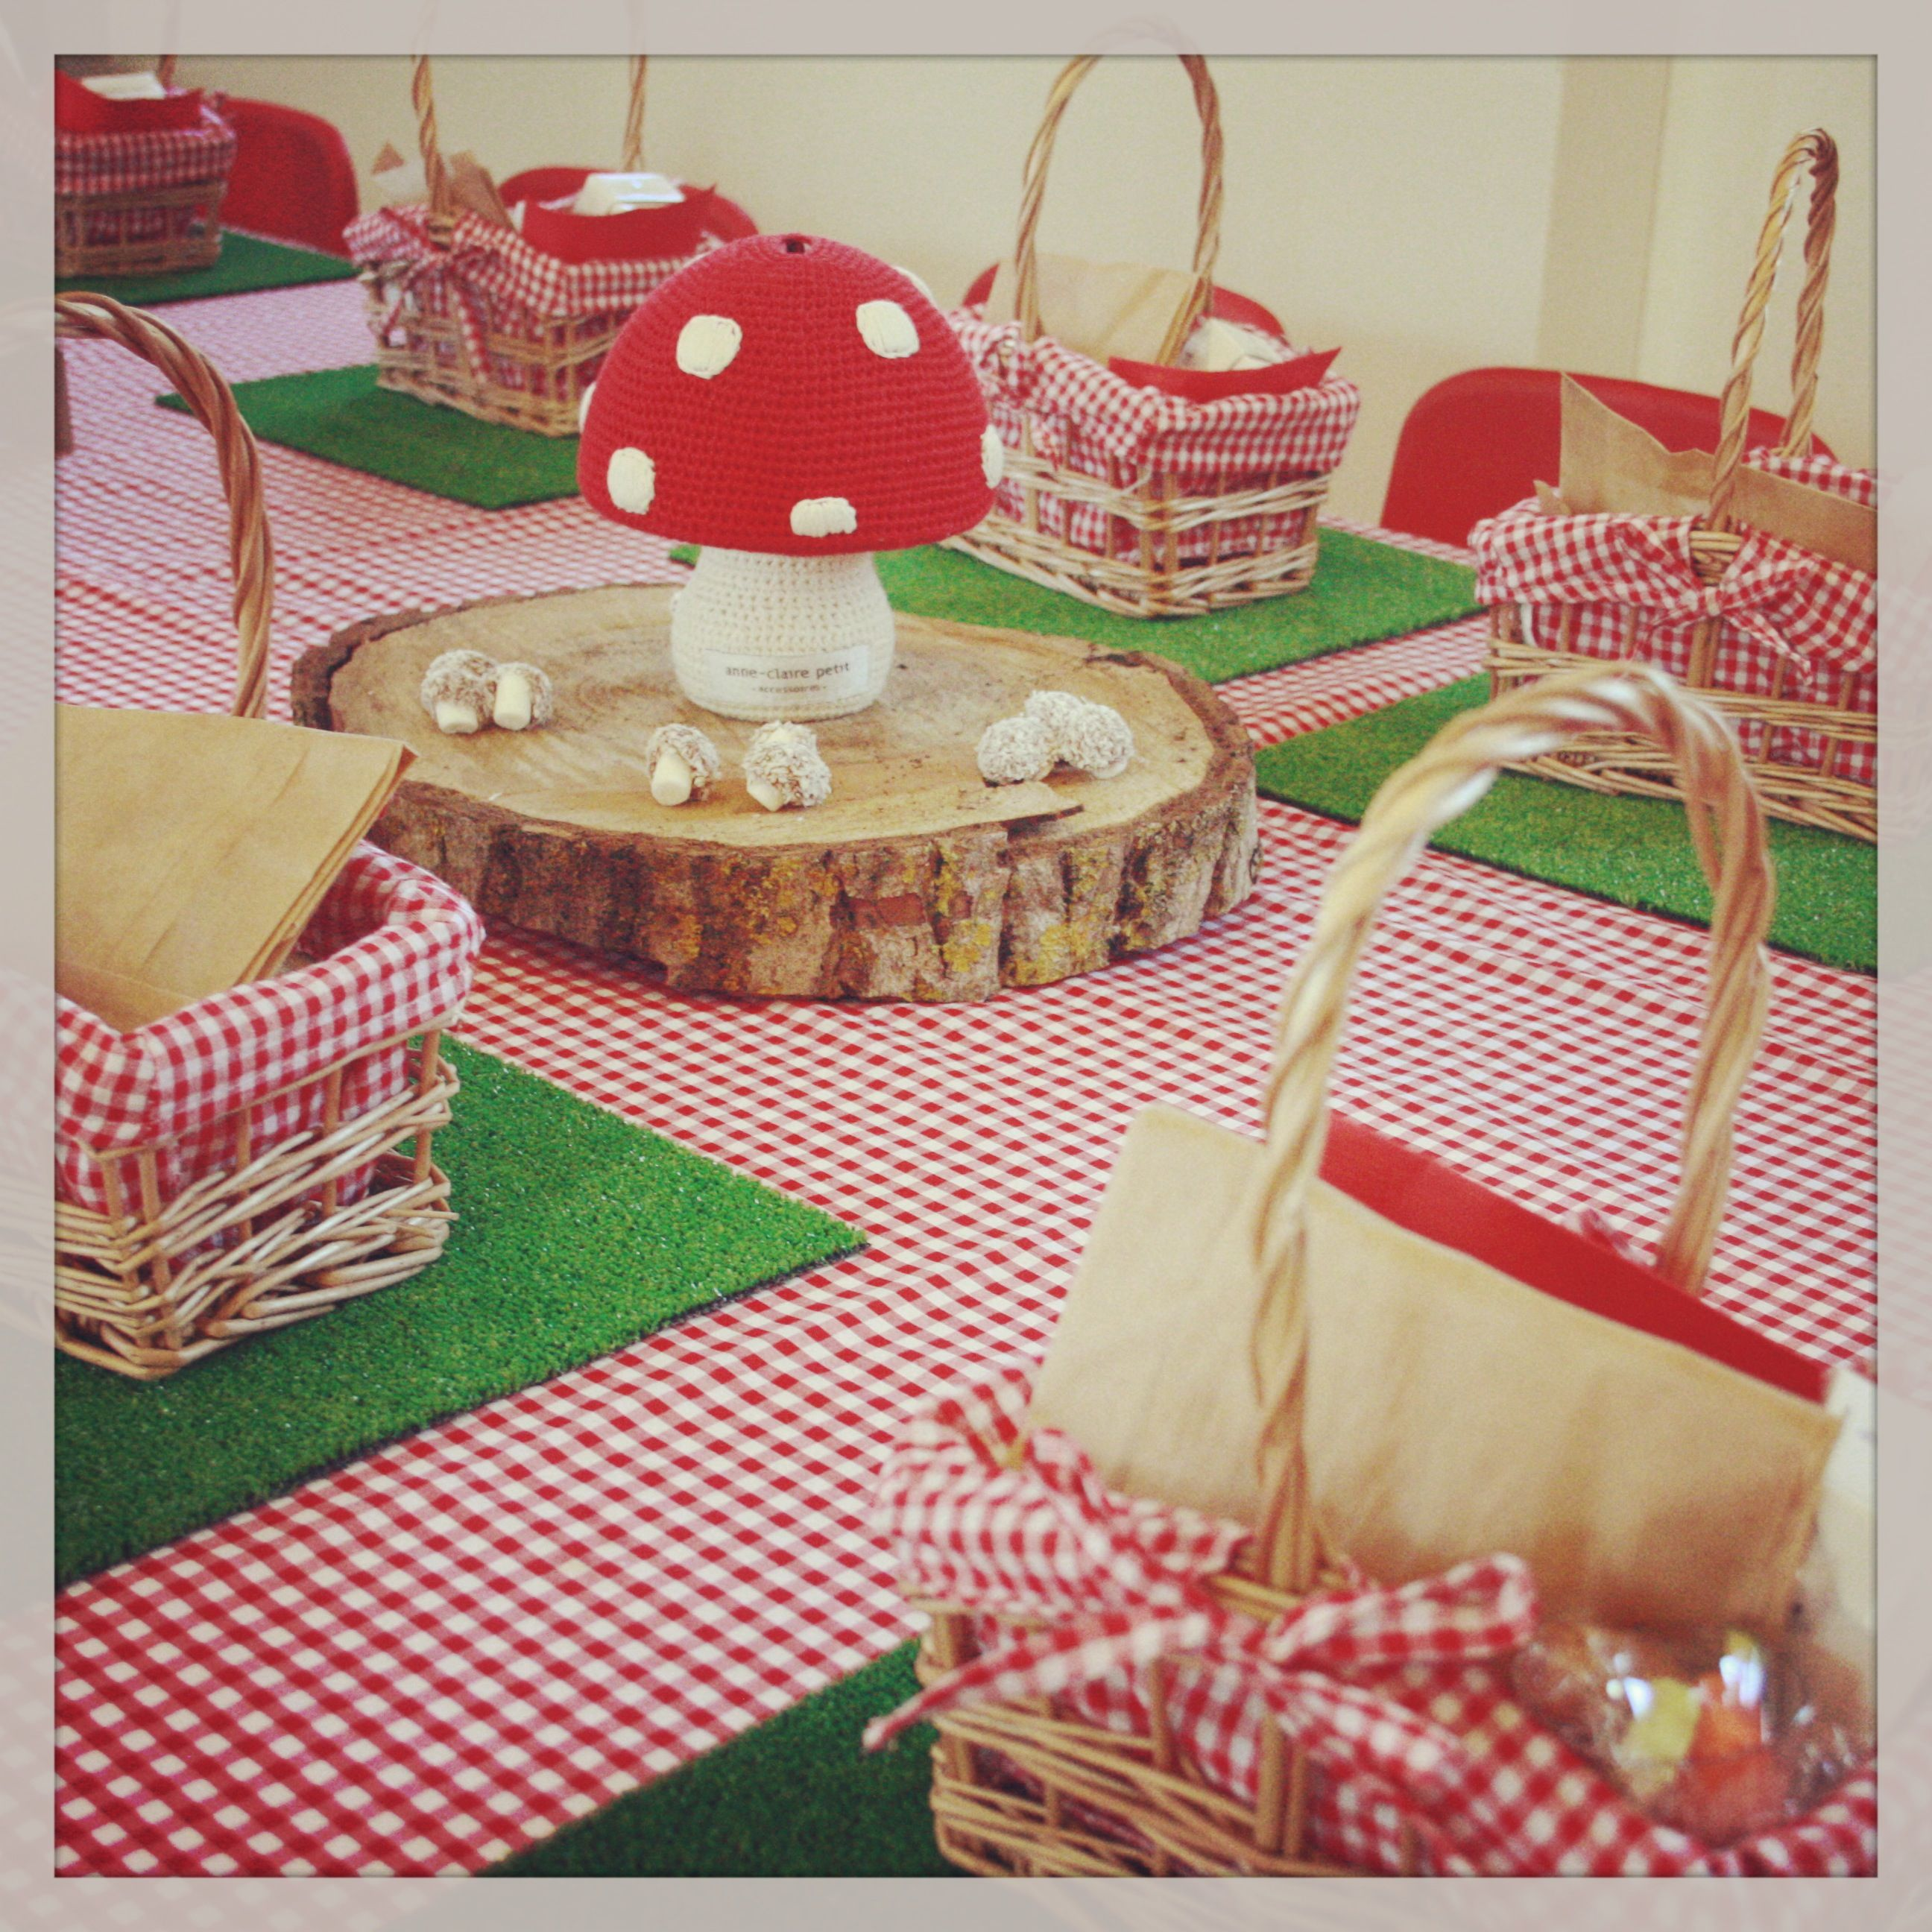 Exceptionnel Teddy Bears Picnic Table